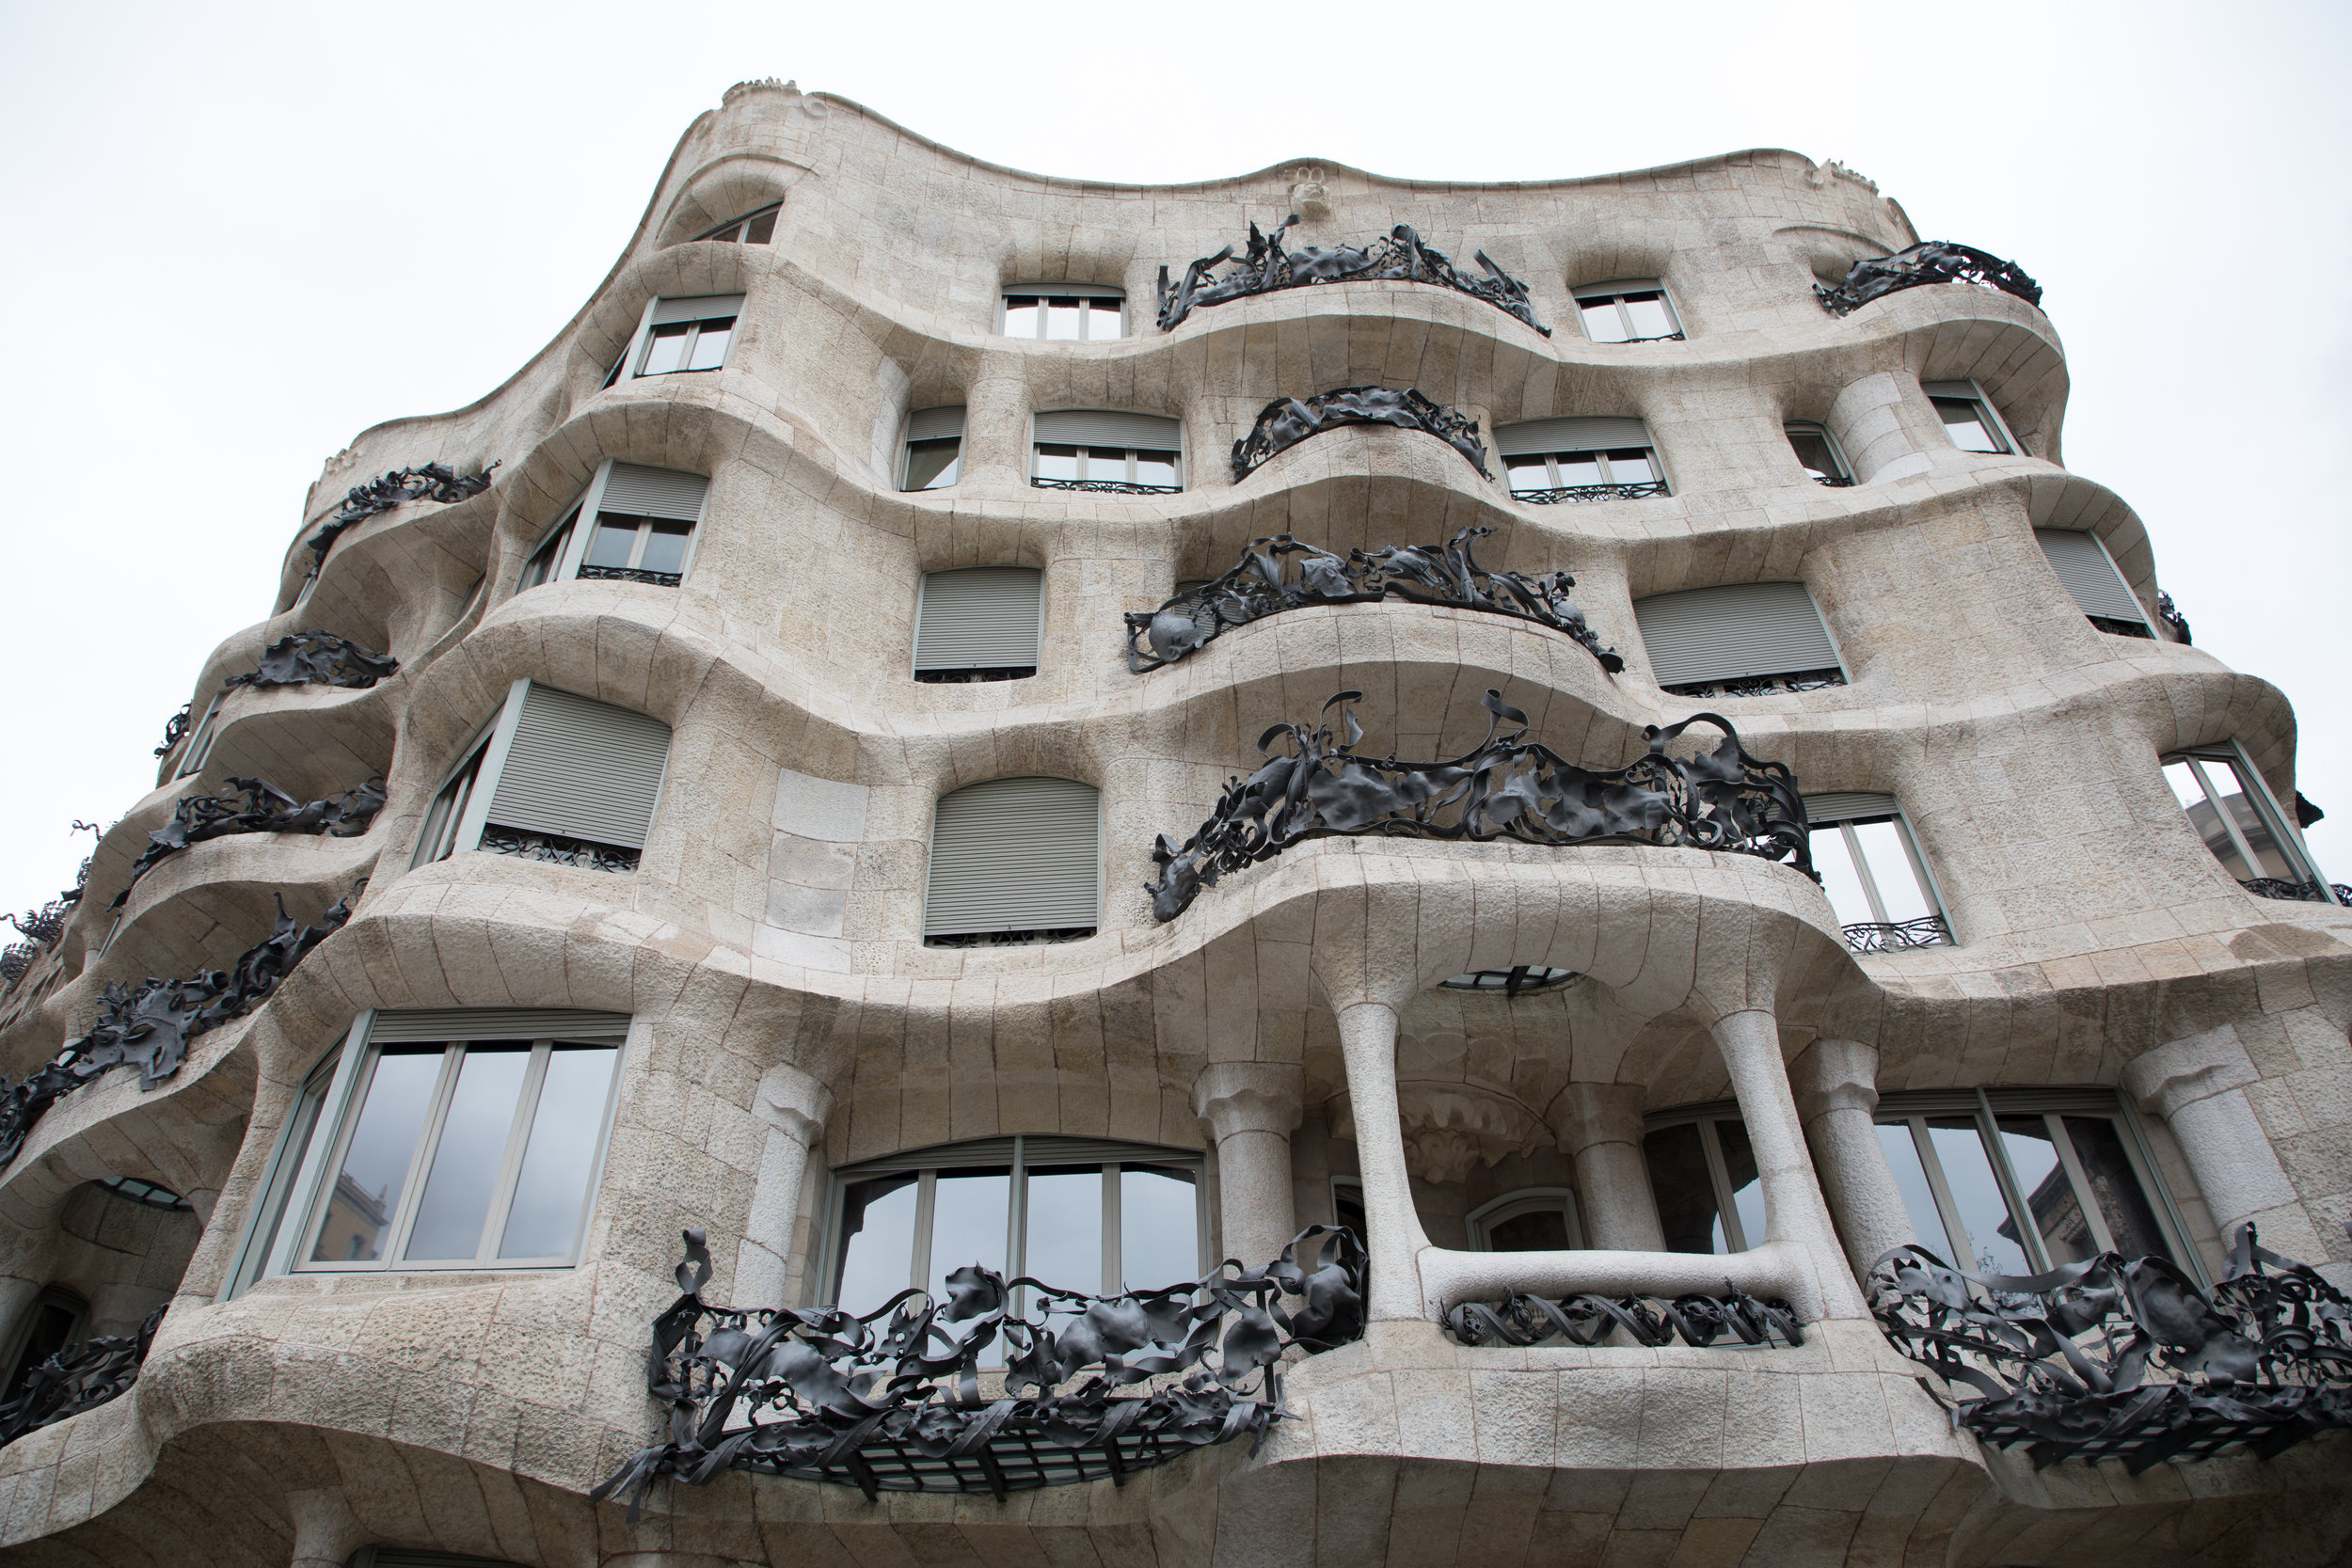 The famous Gaudí houses were right in between the rest of the buildings on one of the main streets. Here is La Pedrera.